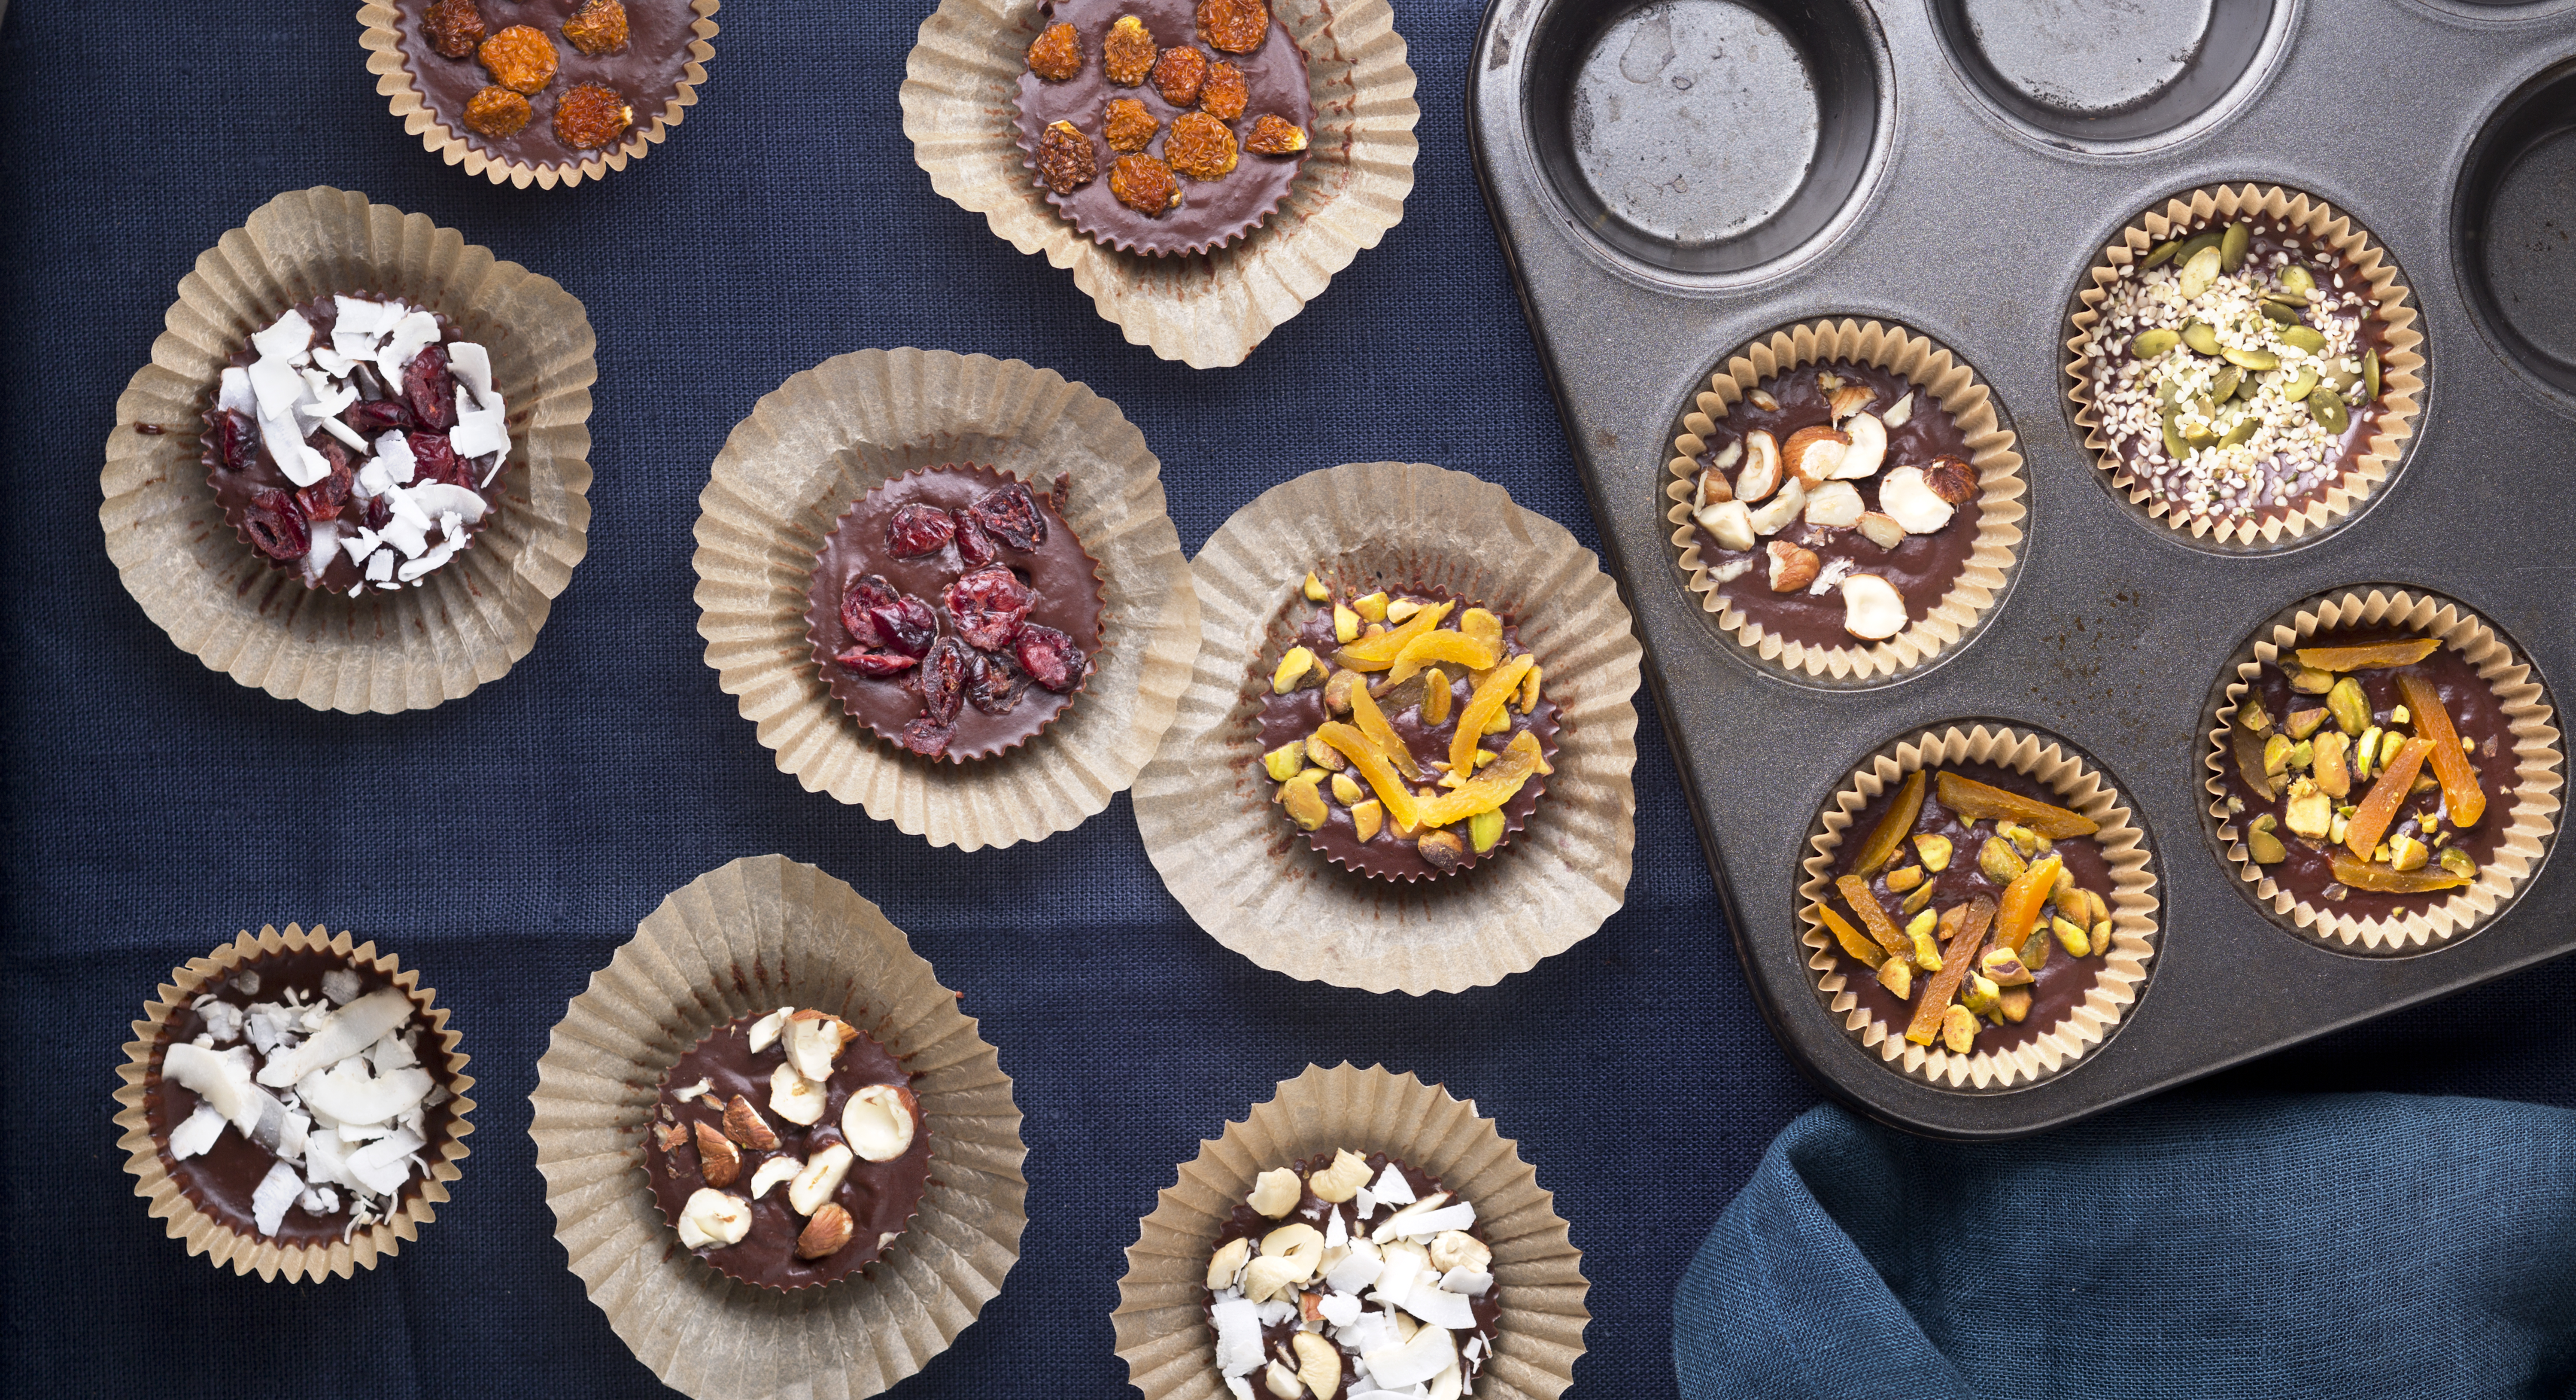 Create Your New Favorite Candy Bar With This Vegan Chocolate Recipe